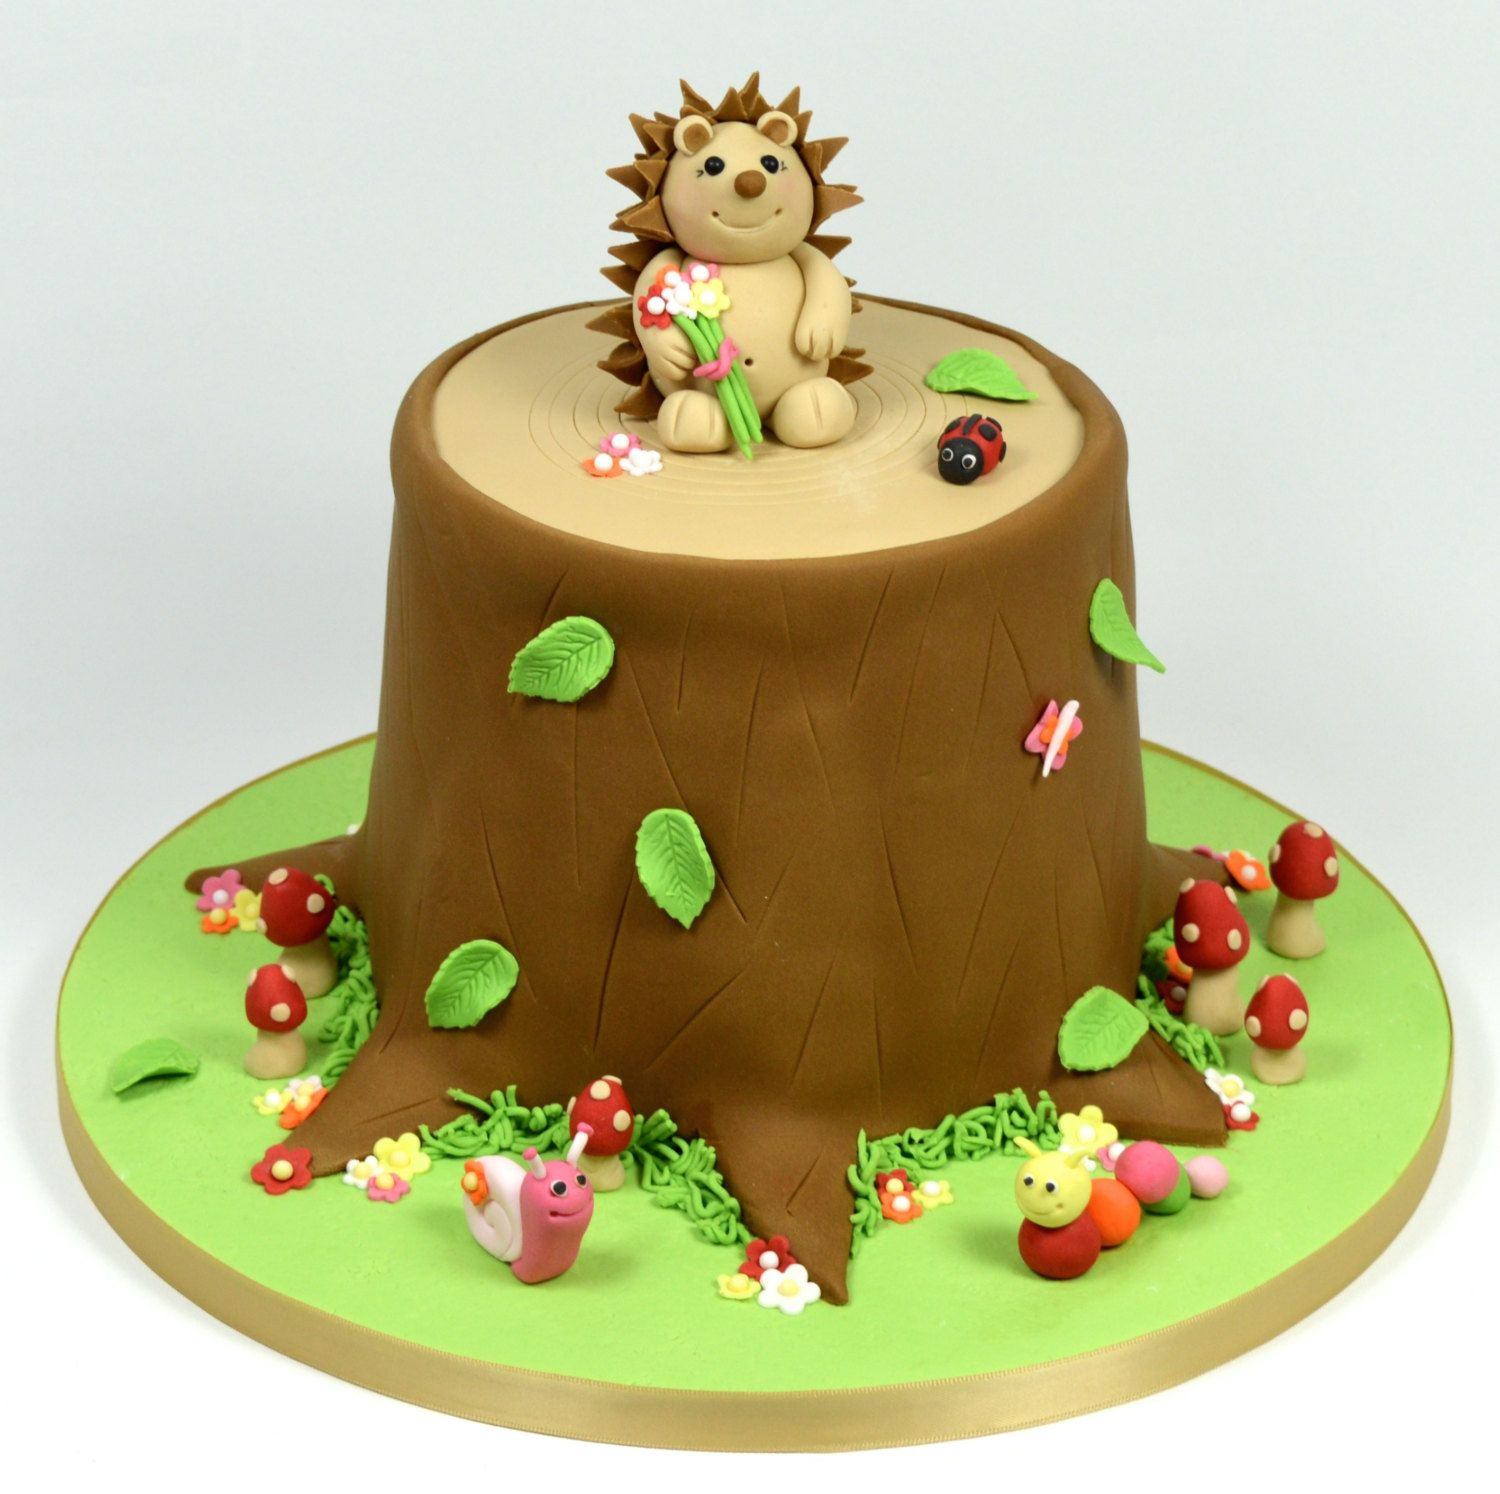 Cute Hedgehog Cake Cakes Hedgehog Cake Cake